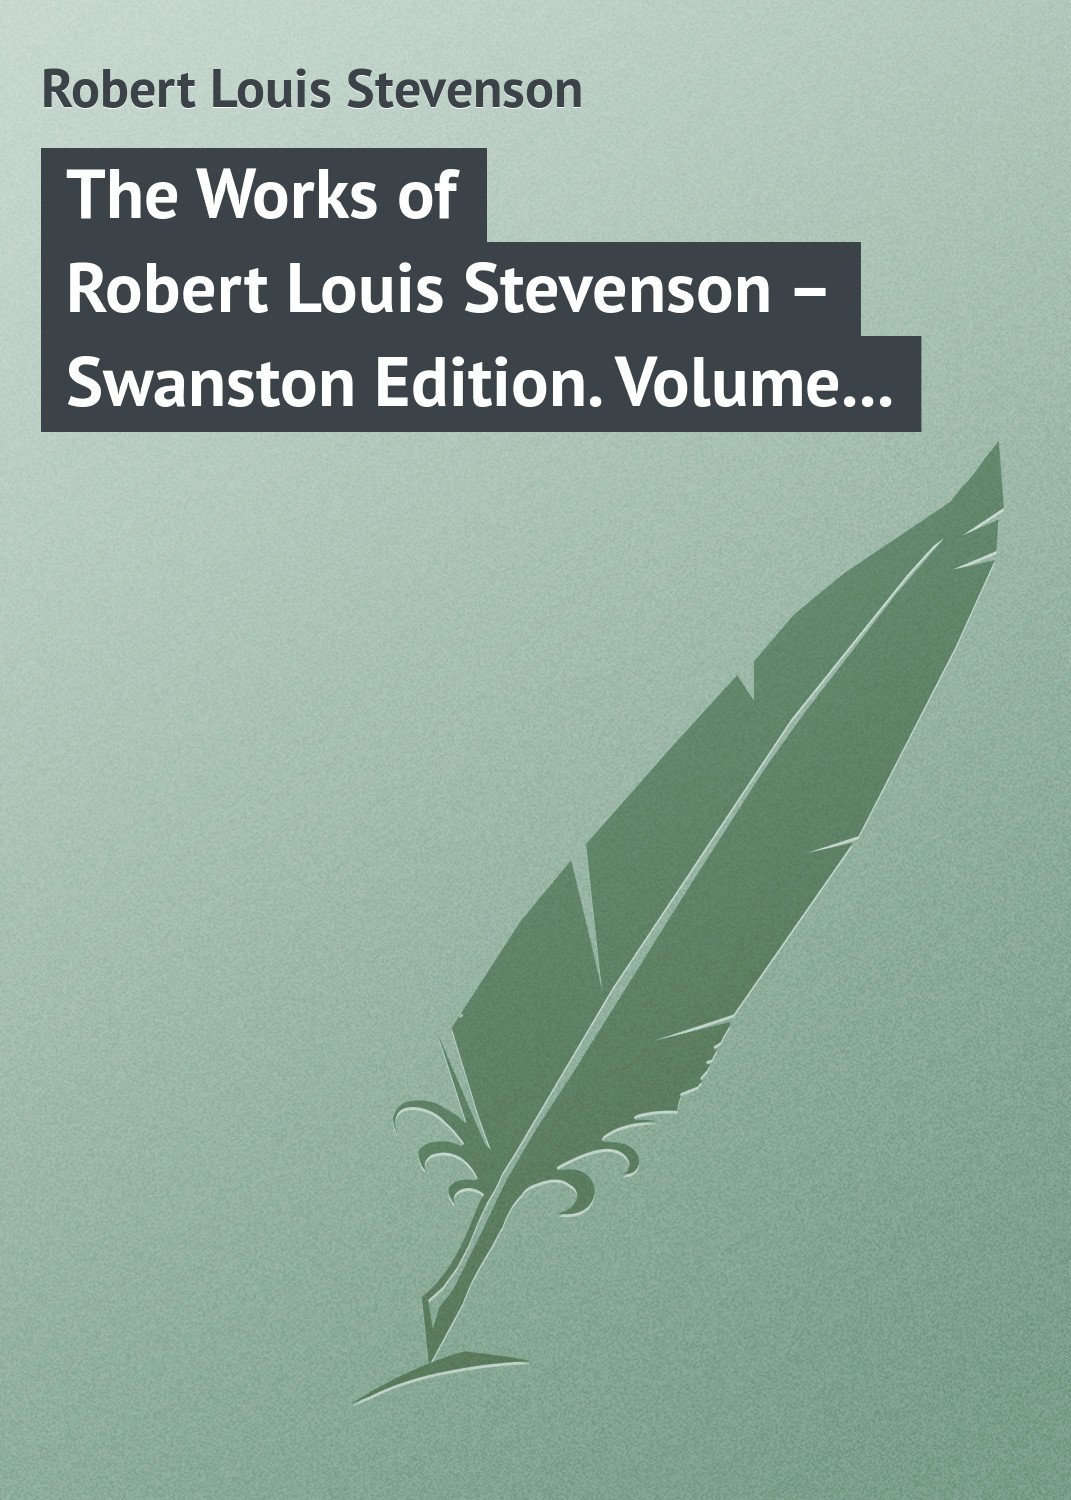 цена на Роберт Льюис Стивенсон The Works of Robert Louis Stevenson – Swanston Edition. Volume 16